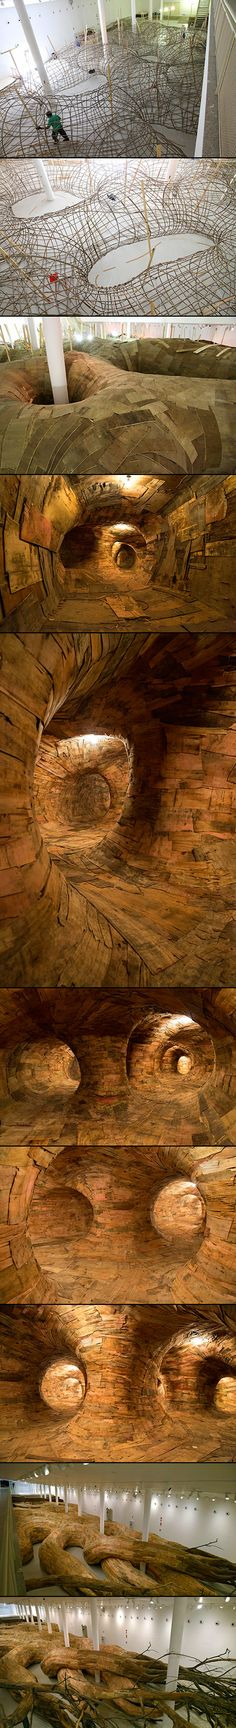 Art & Installation - Brazilian artist Henrique Oliveira's incredible installation titled Transarquitetônica invites you to go on a fantastical journey through a cavernous interior. The recently-completed work is his largest to date, and he has successfully created a fully-immersive environment inside of a large, root-like system.